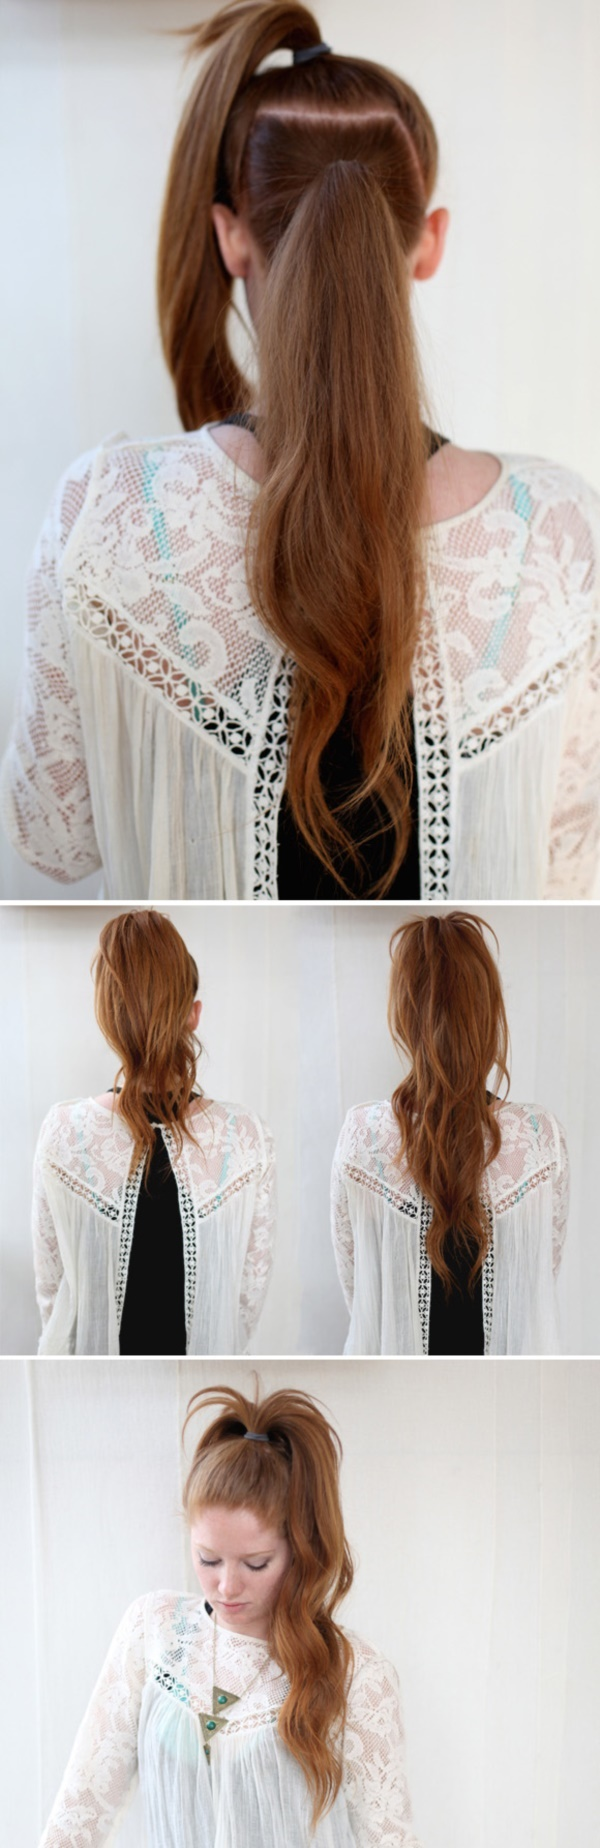 Cool 101 Easy Diy Hairstyles For Medium And Long Hair To Snatch Attention Short Hairstyles Gunalazisus